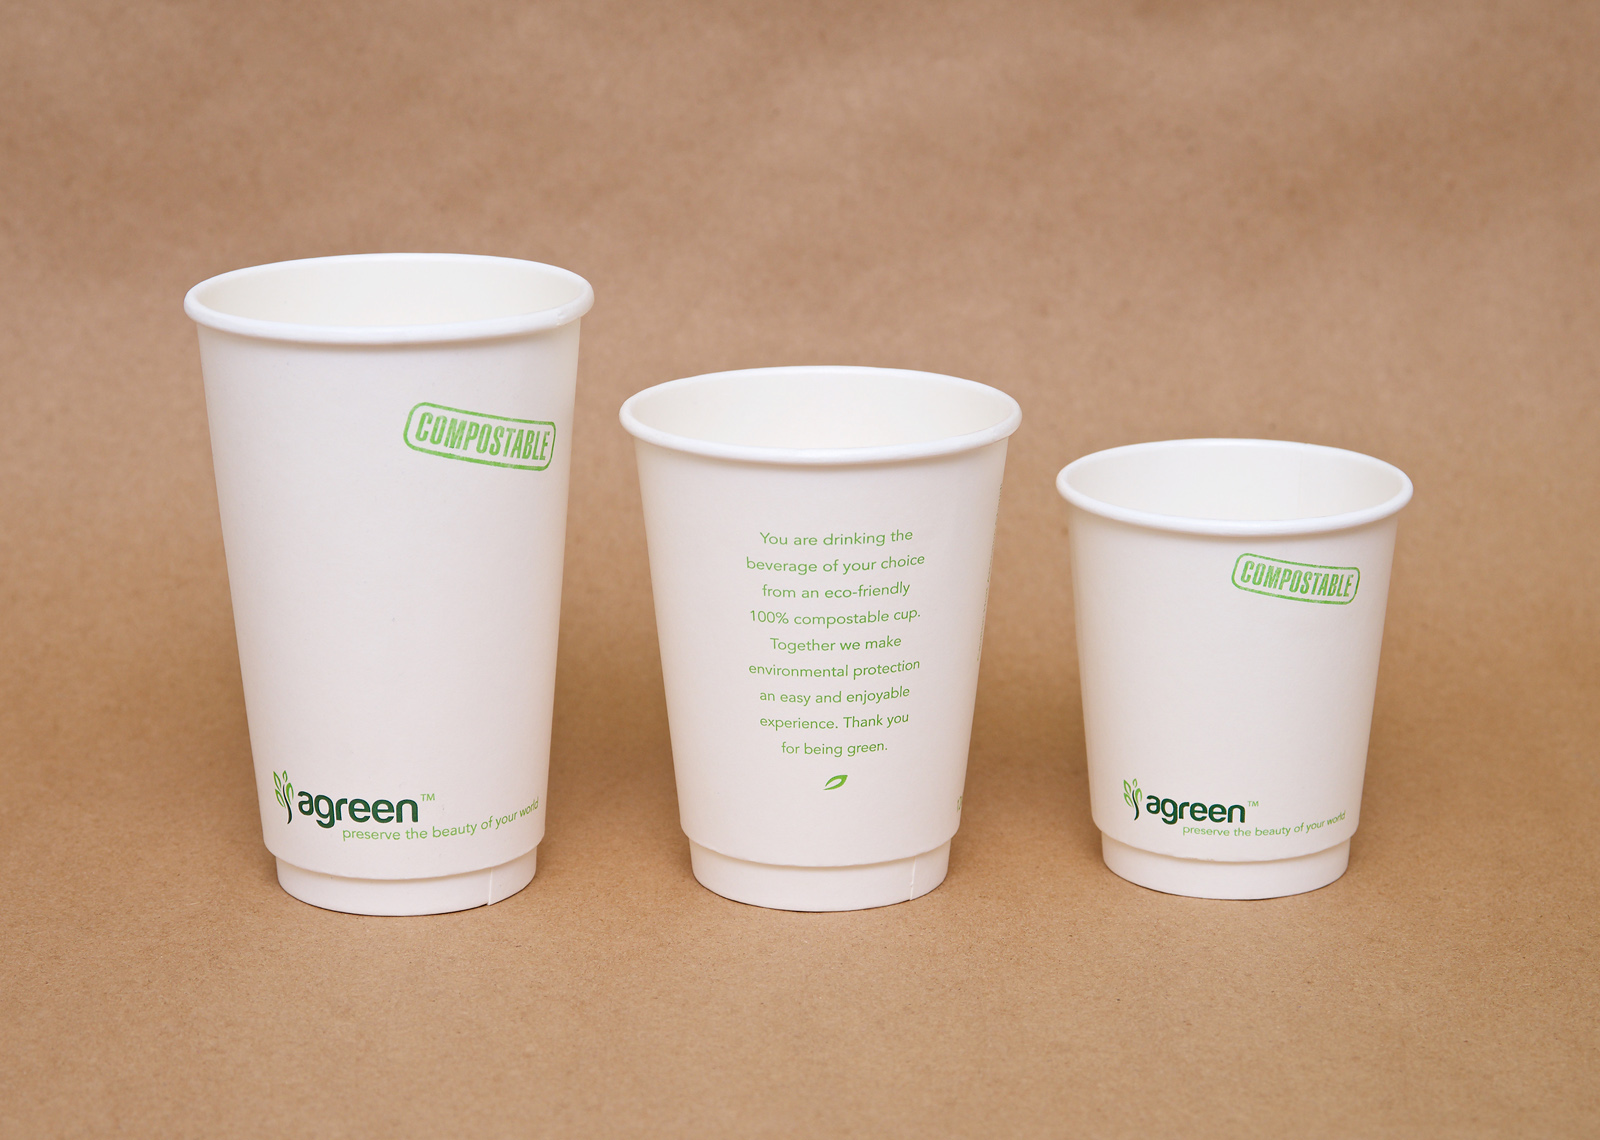 ab16b0db268 Agreen™ brand double-wall hot drink cup presents an excellent option to  eliminate the use of second cup or a cup sleeve. Agreen™ insulated double-wall  cups ...